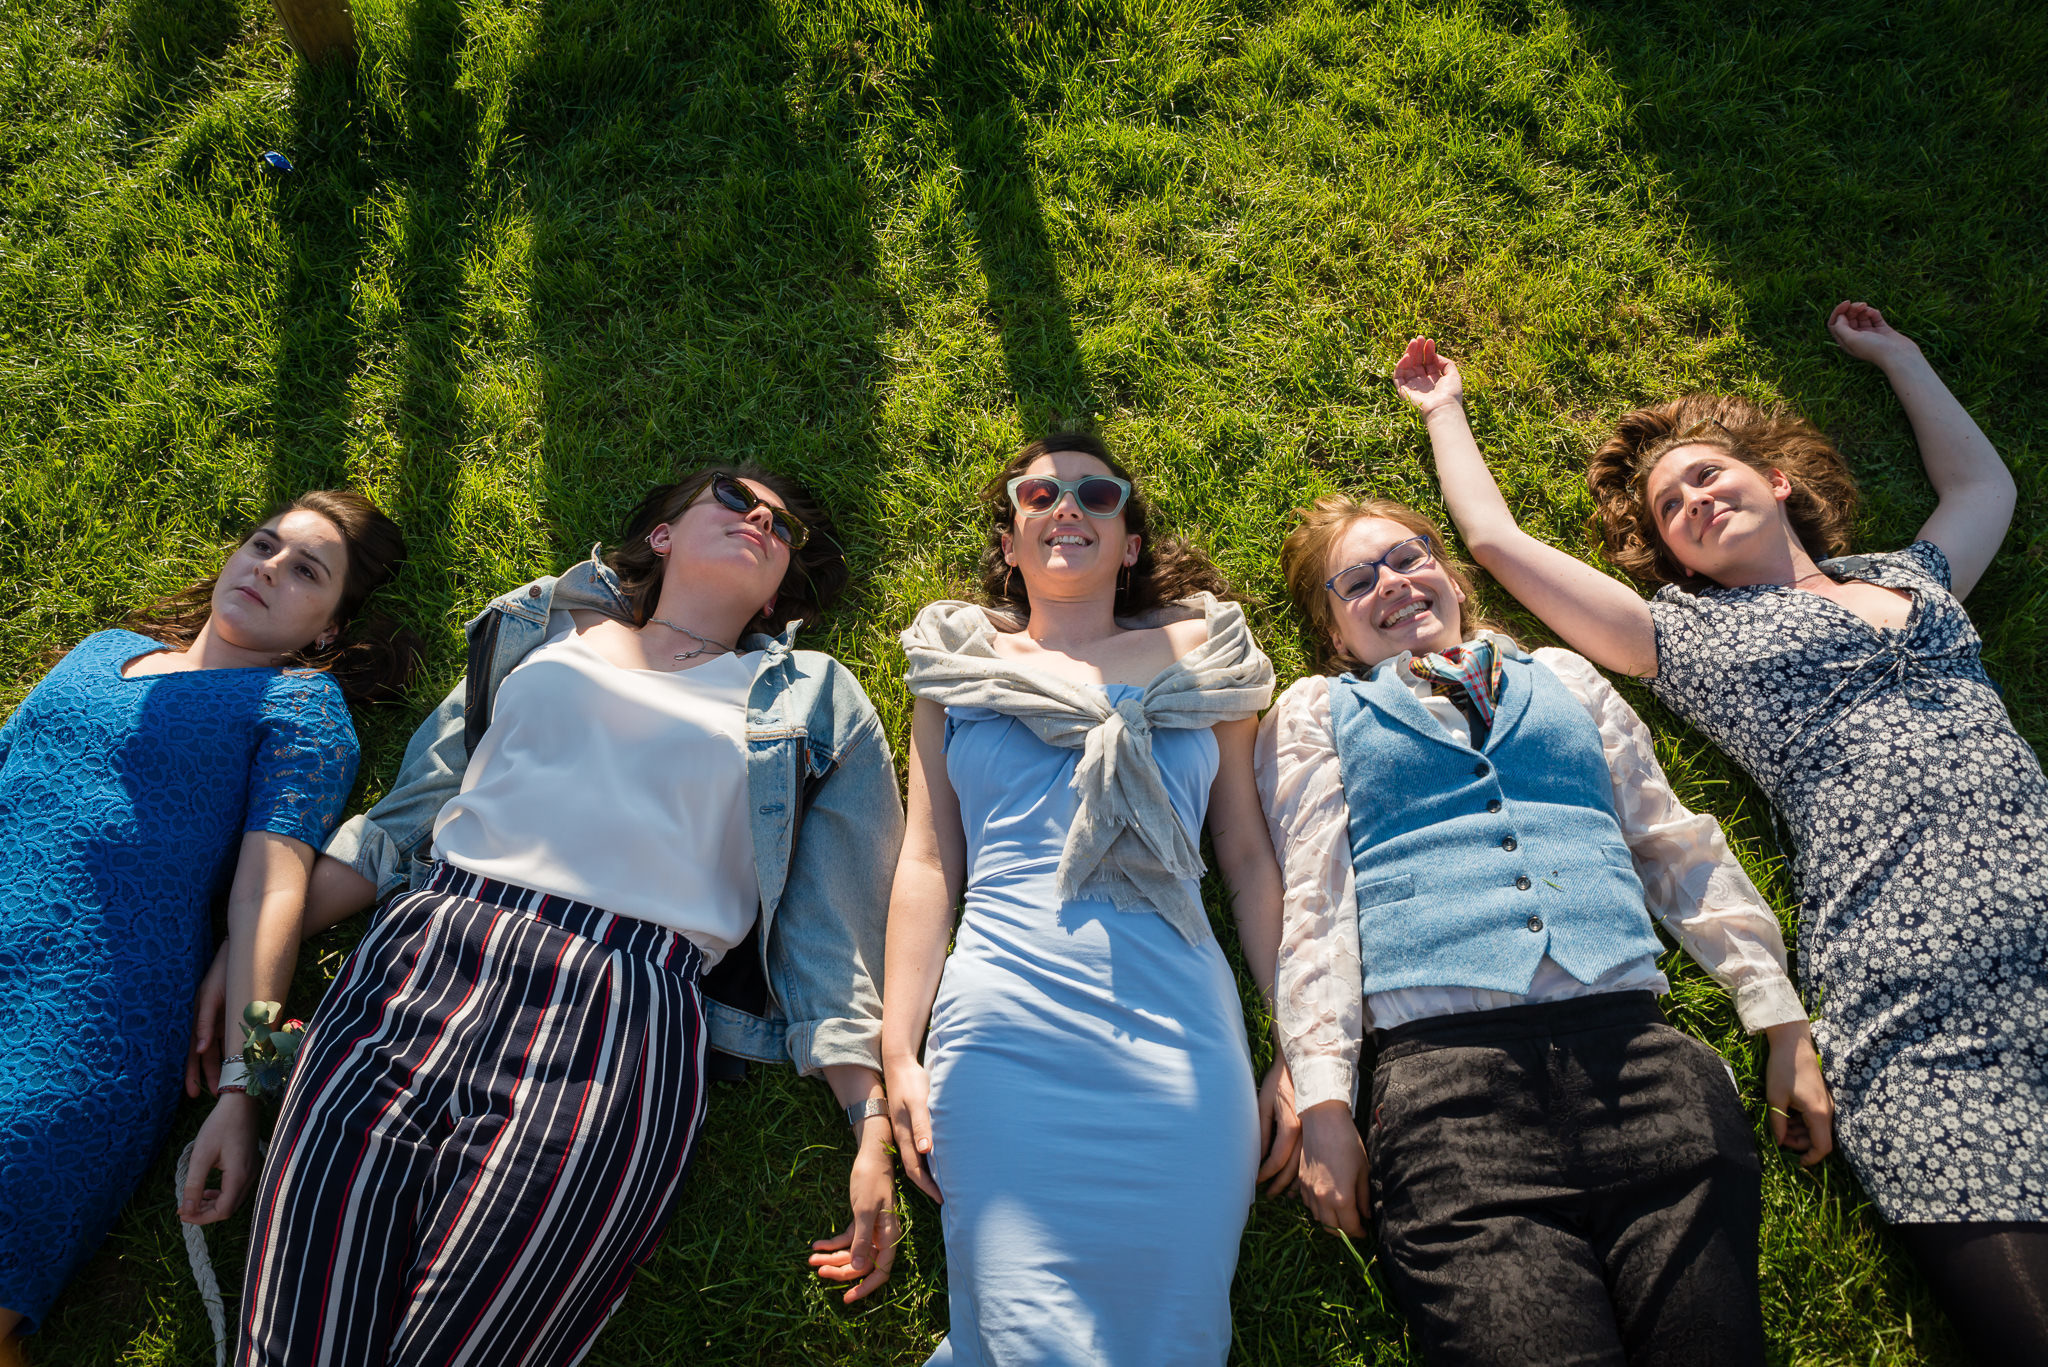 The Bride lying on the grass with her friends